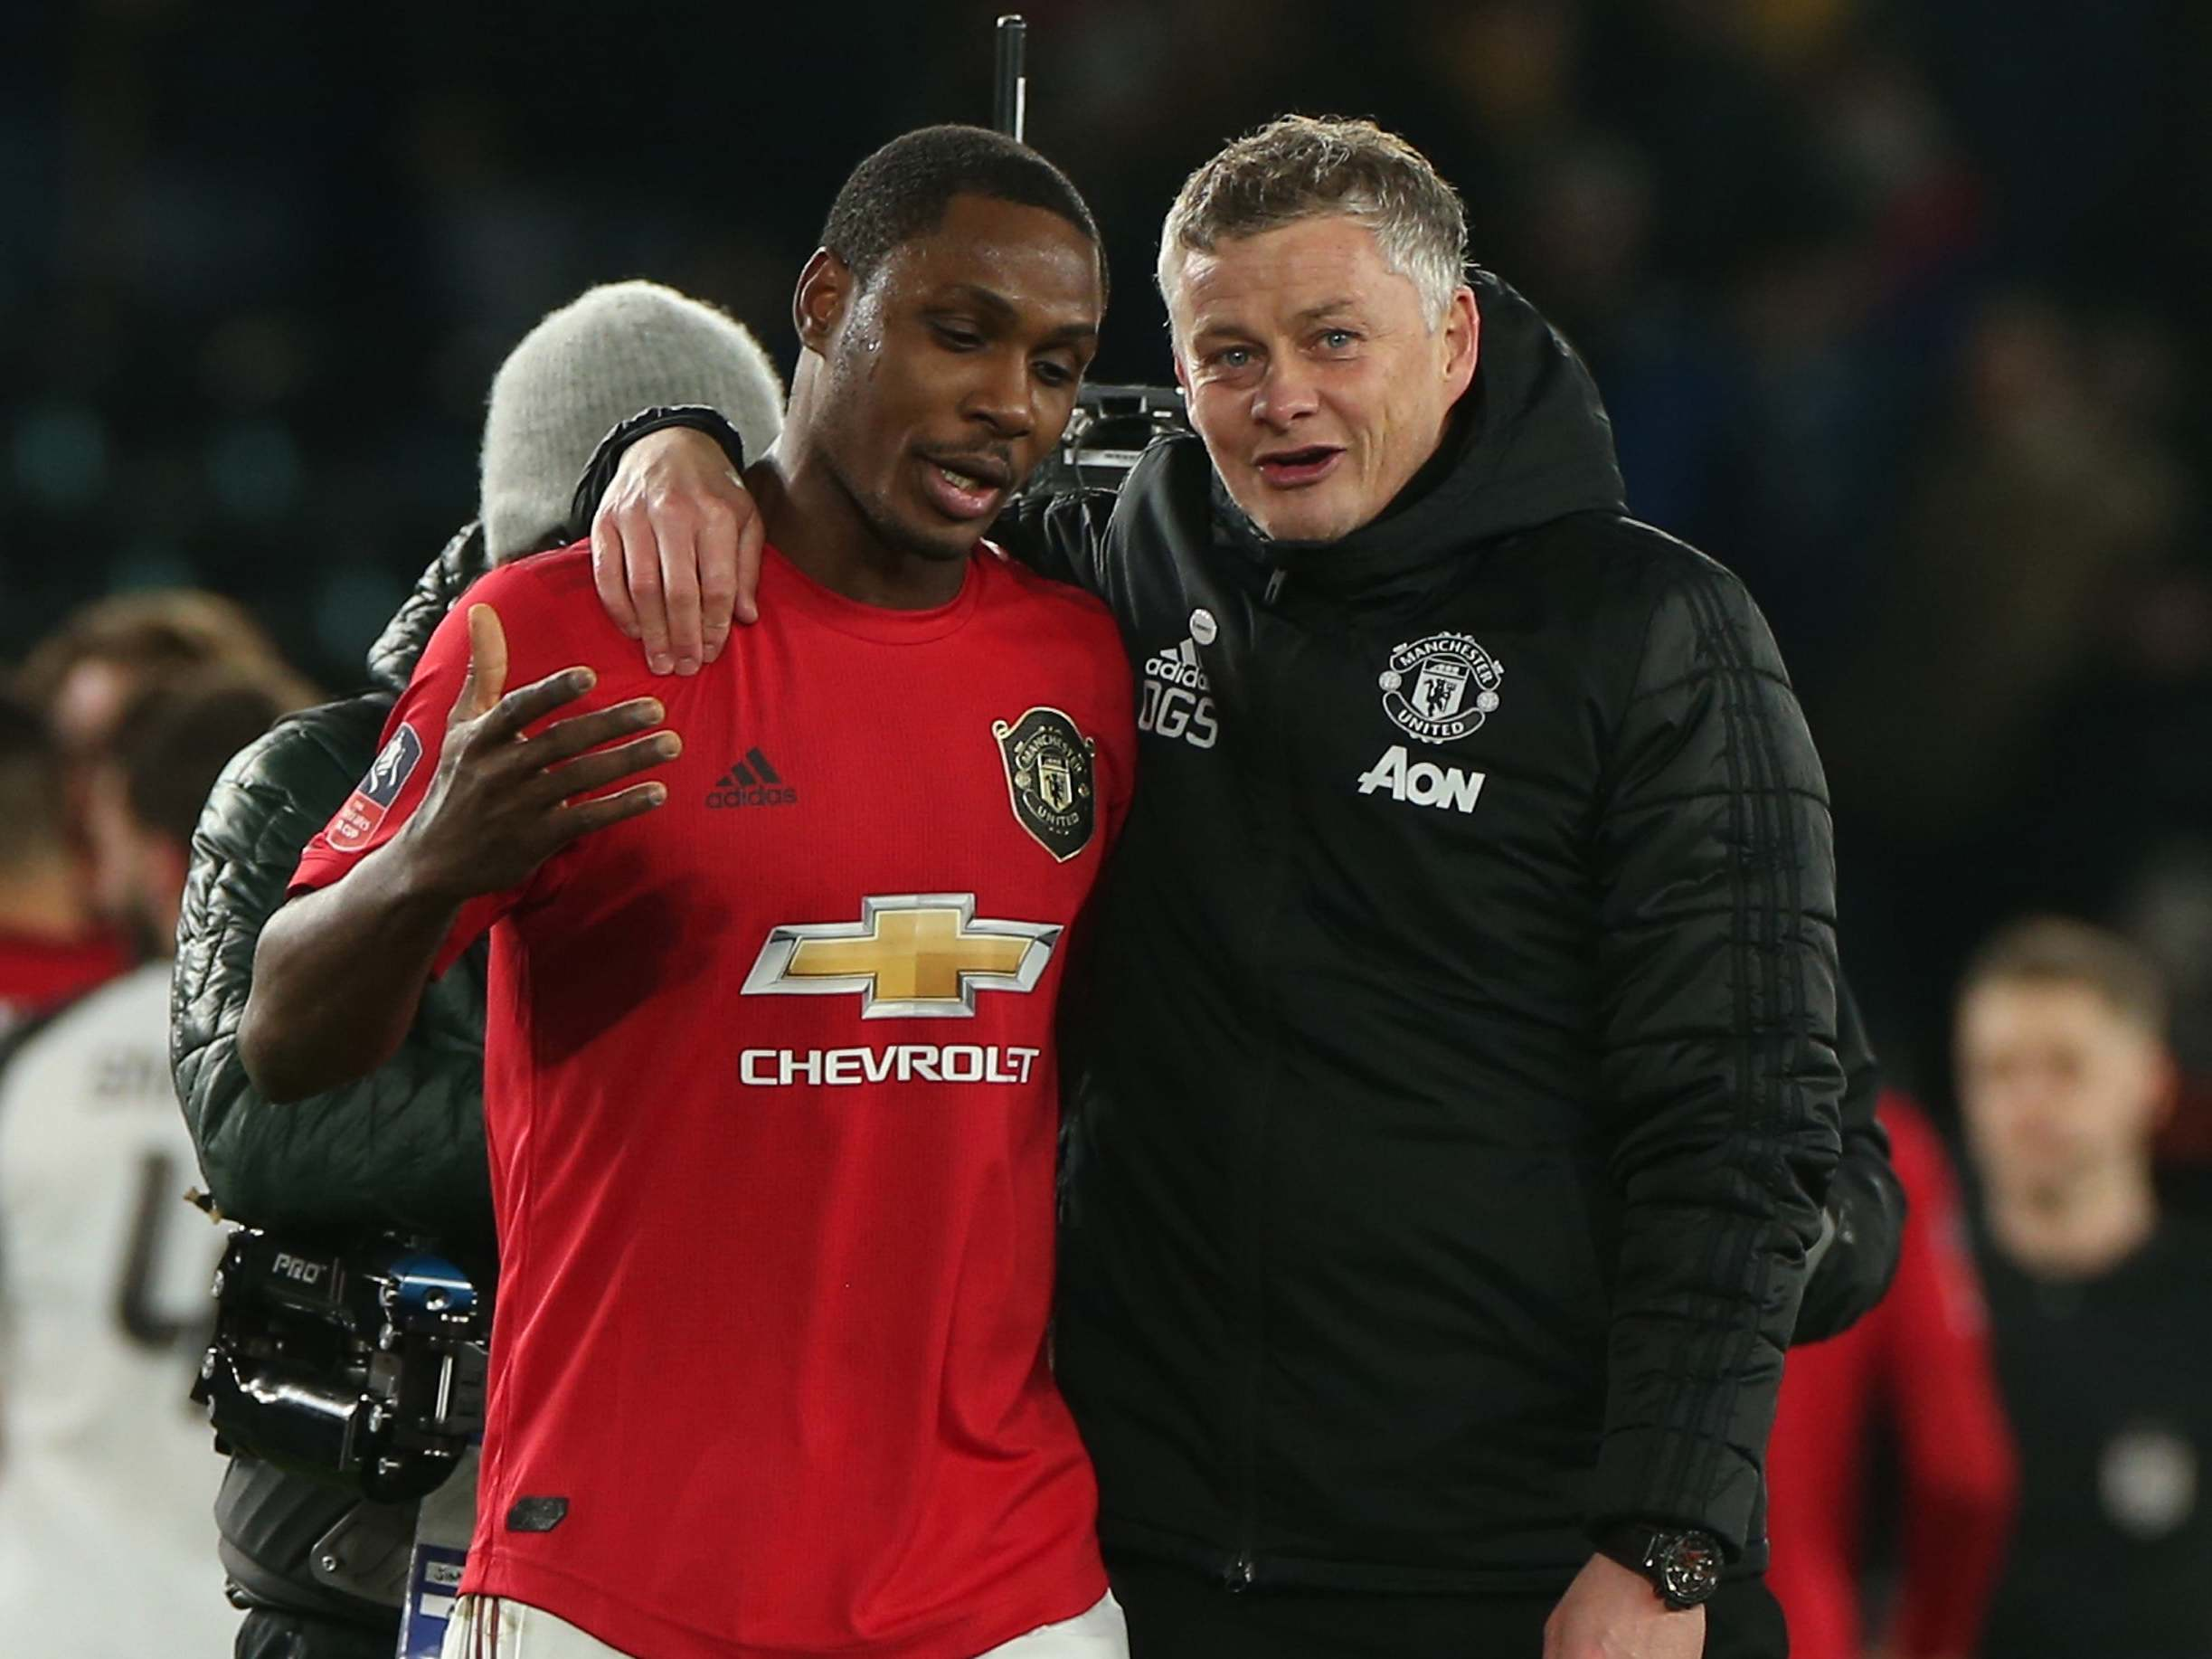 Derby vs Man United: Solskjaer praises 'happy' Ighalo after FA Cup brace